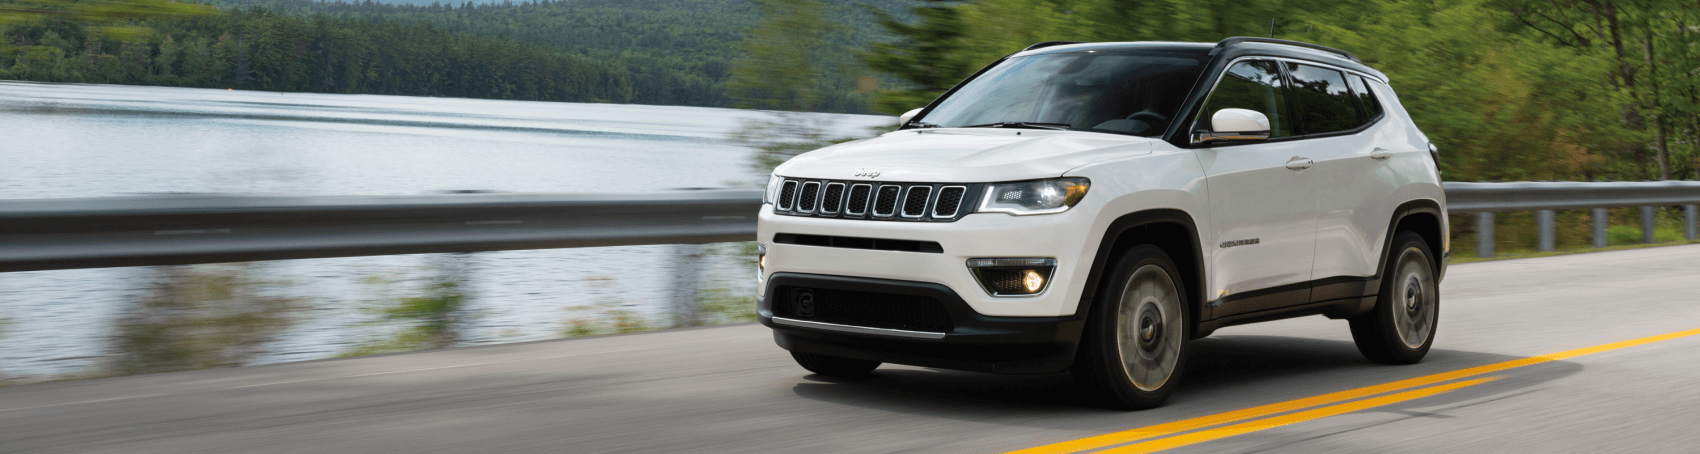 2021 Jeep Compass Limited Pearl White Mountain Road Findlay CDJR